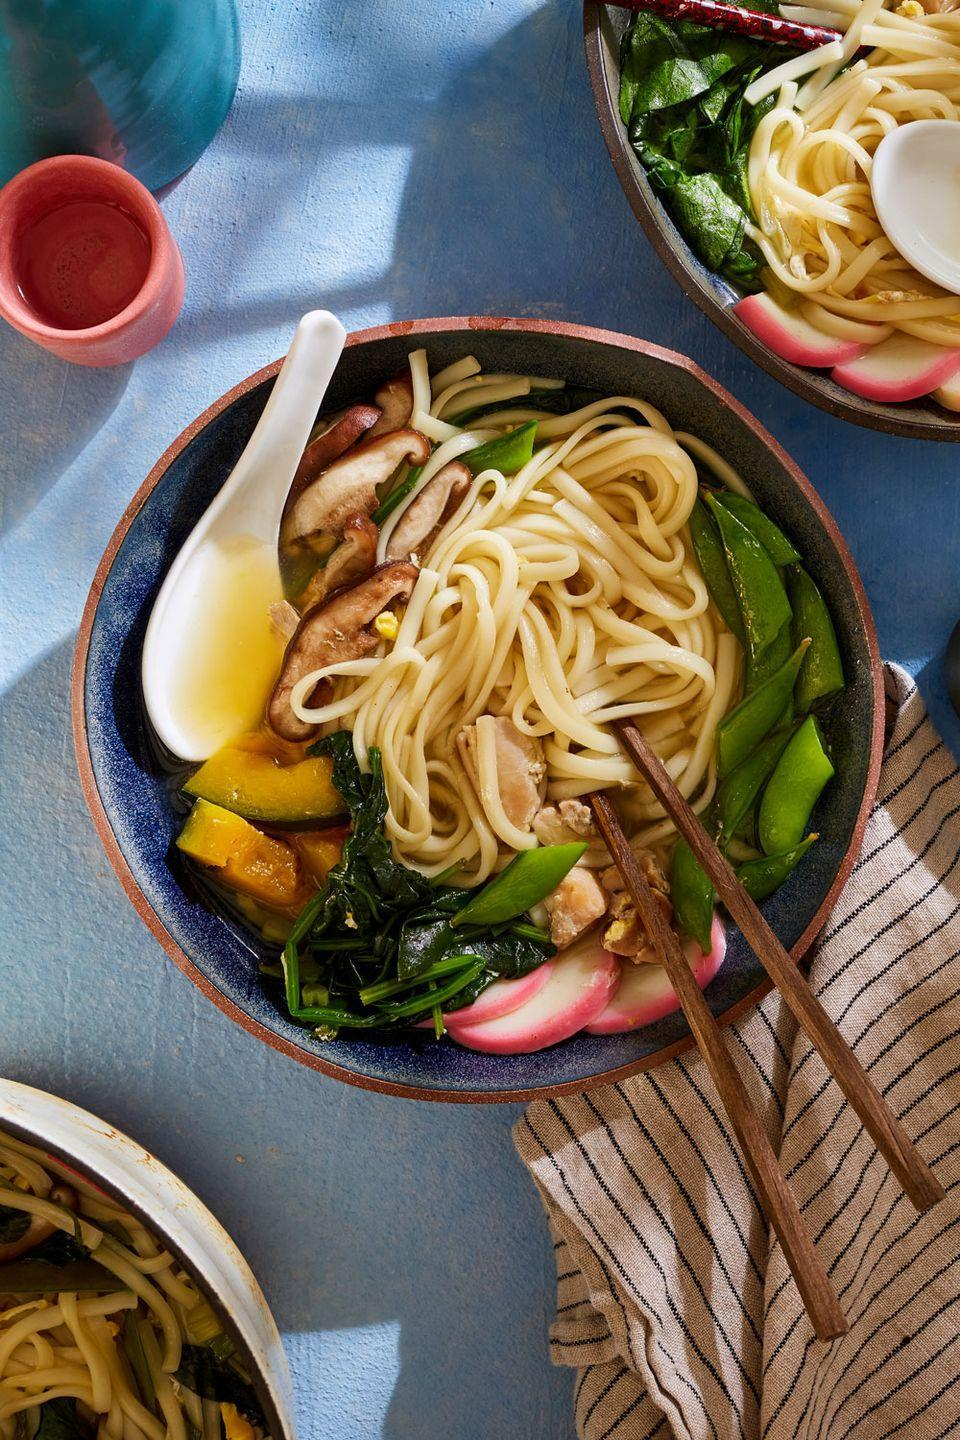 """<p>We love dishes high in flavor, low in commitment. And if it comes together in one pot? All in! Nabeyaki udon is a one-pot Japanese noodle soup that is just this. </p><p>Get the recipe from <a href=""""https://www.delish.com/cooking/recipe-ideas/a35047520/nabeyaki-udon-recipe/"""" rel=""""nofollow noopener"""" target=""""_blank"""" data-ylk=""""slk:Delish"""" class=""""link rapid-noclick-resp"""">Delish</a>.</p>"""